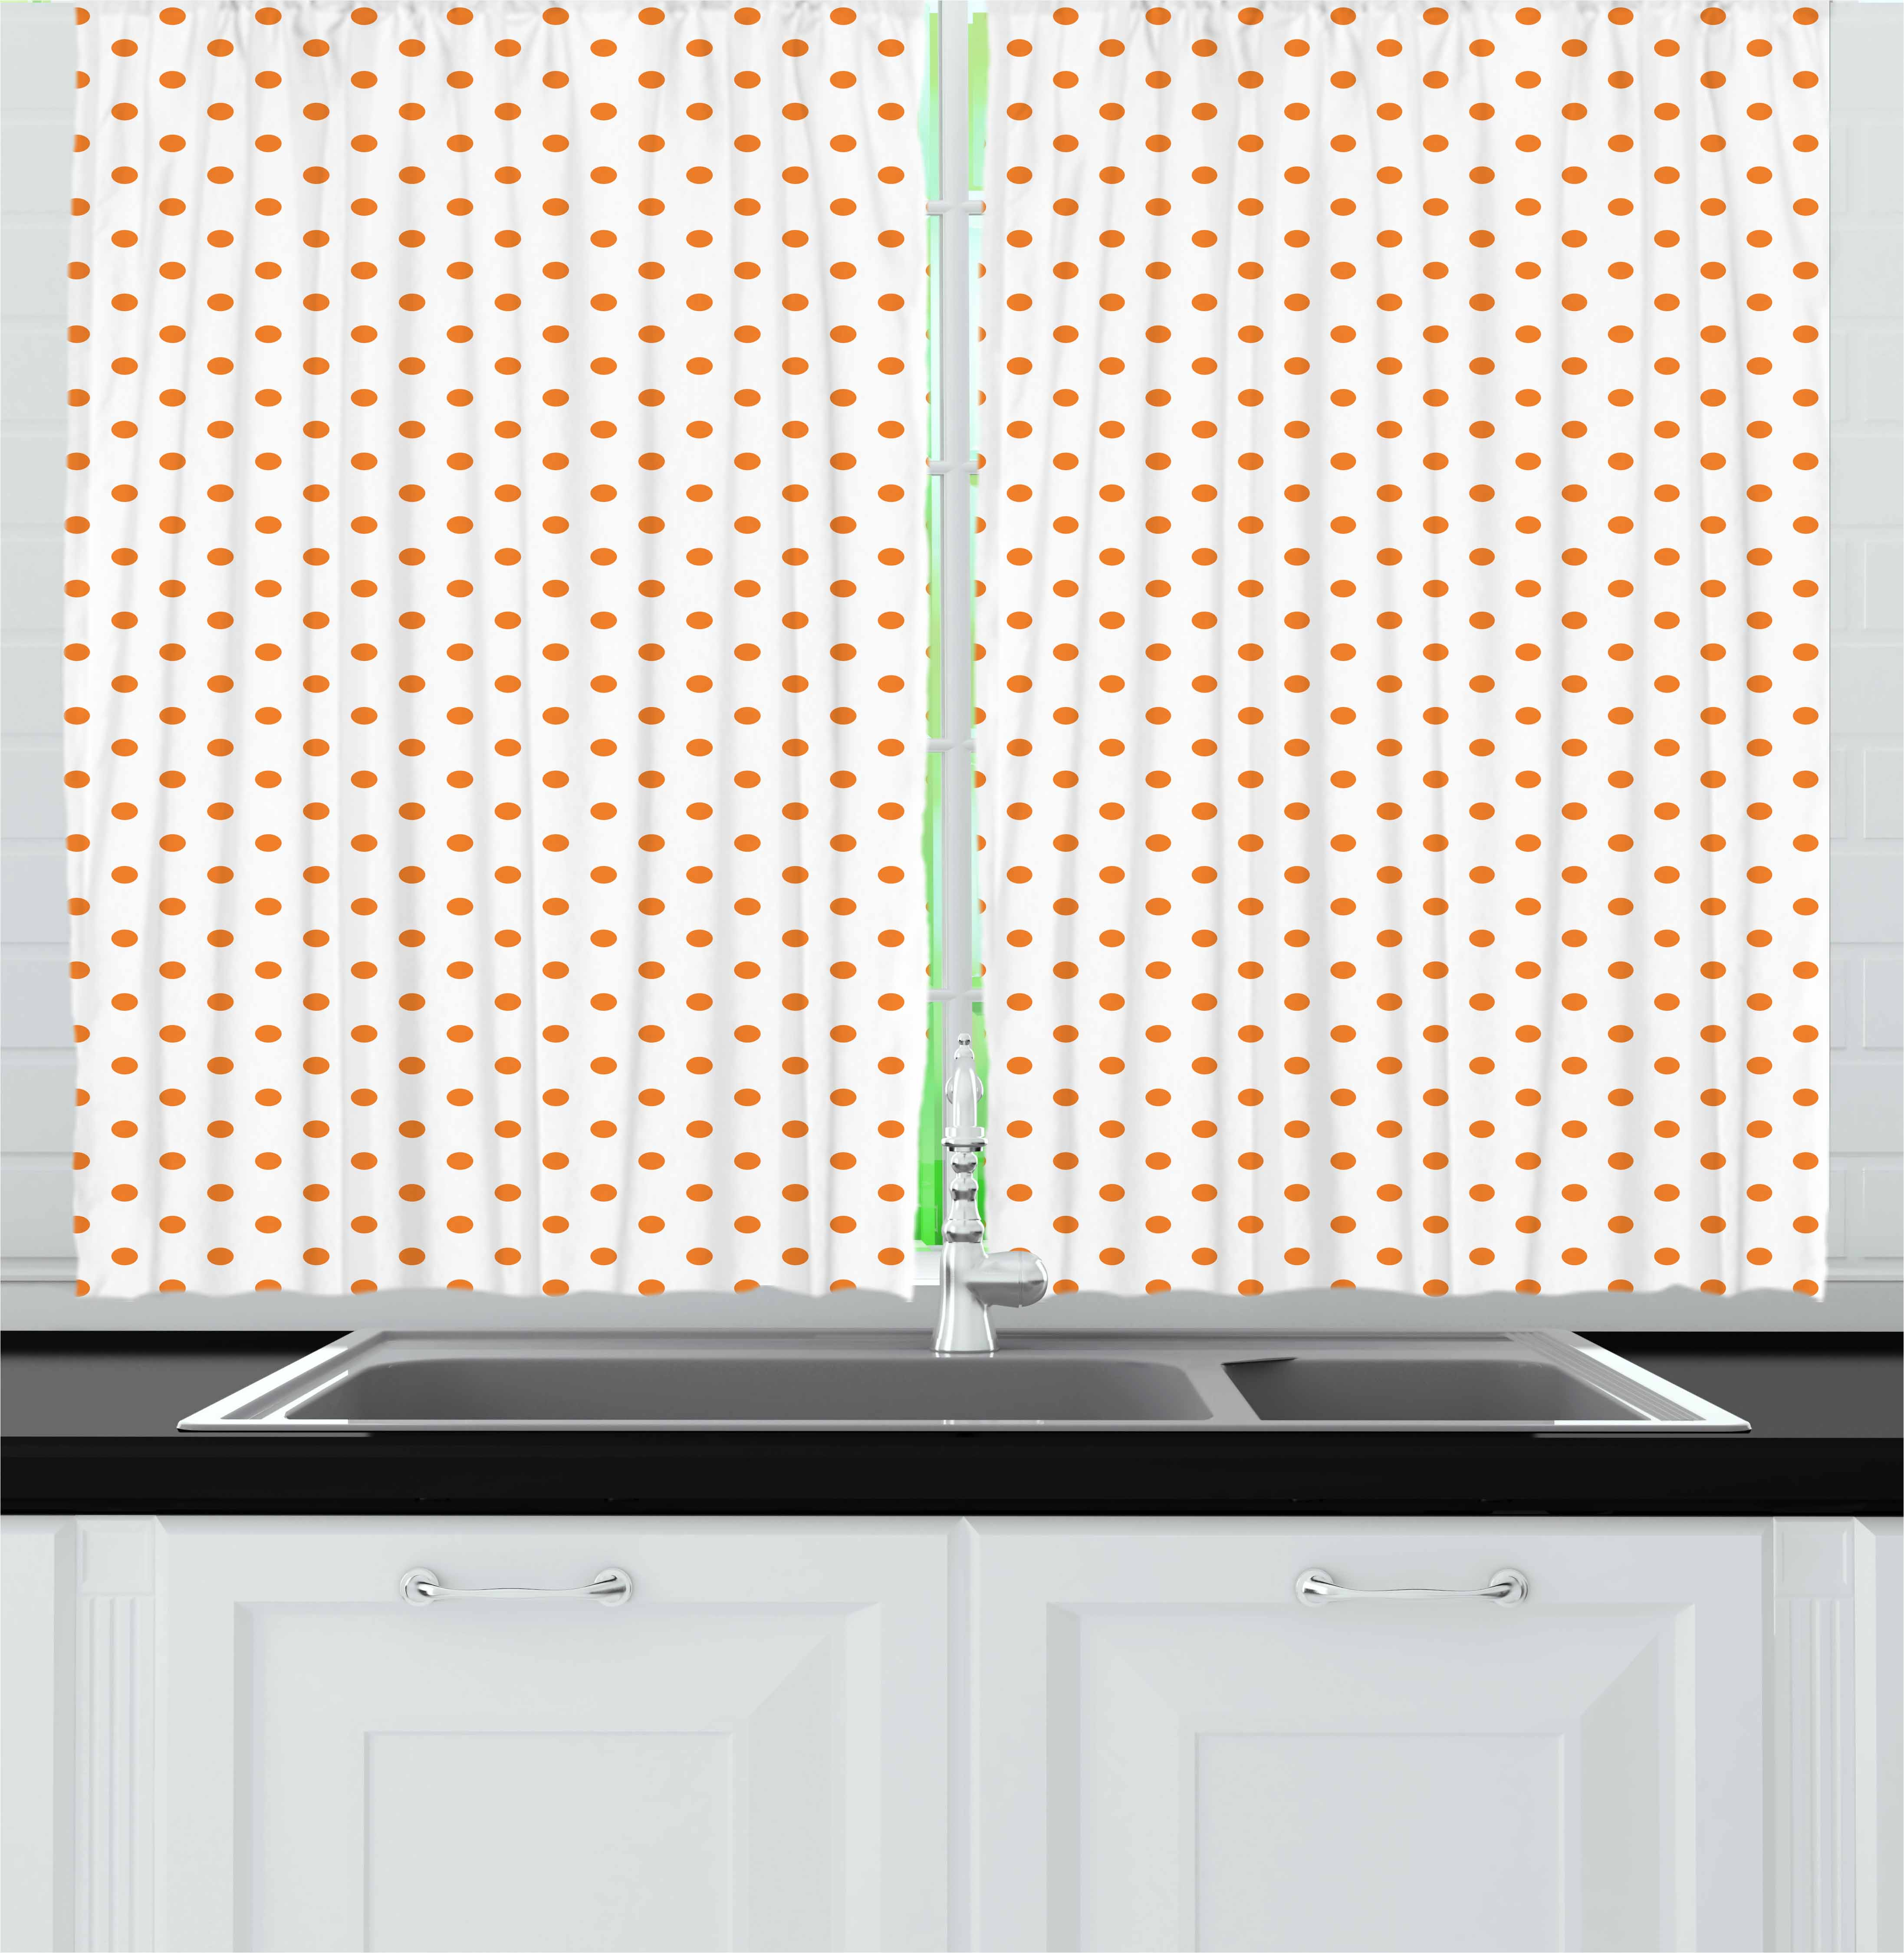 Orange Curtains 2 Panels Set, Little Orange Polka Dots on Blank Backdrop Spotted Tile Pattern Retro Style Print, Window Drapes for Living Room Bedroom, 55W X 39L Inches, Orange White, by Ambesonne